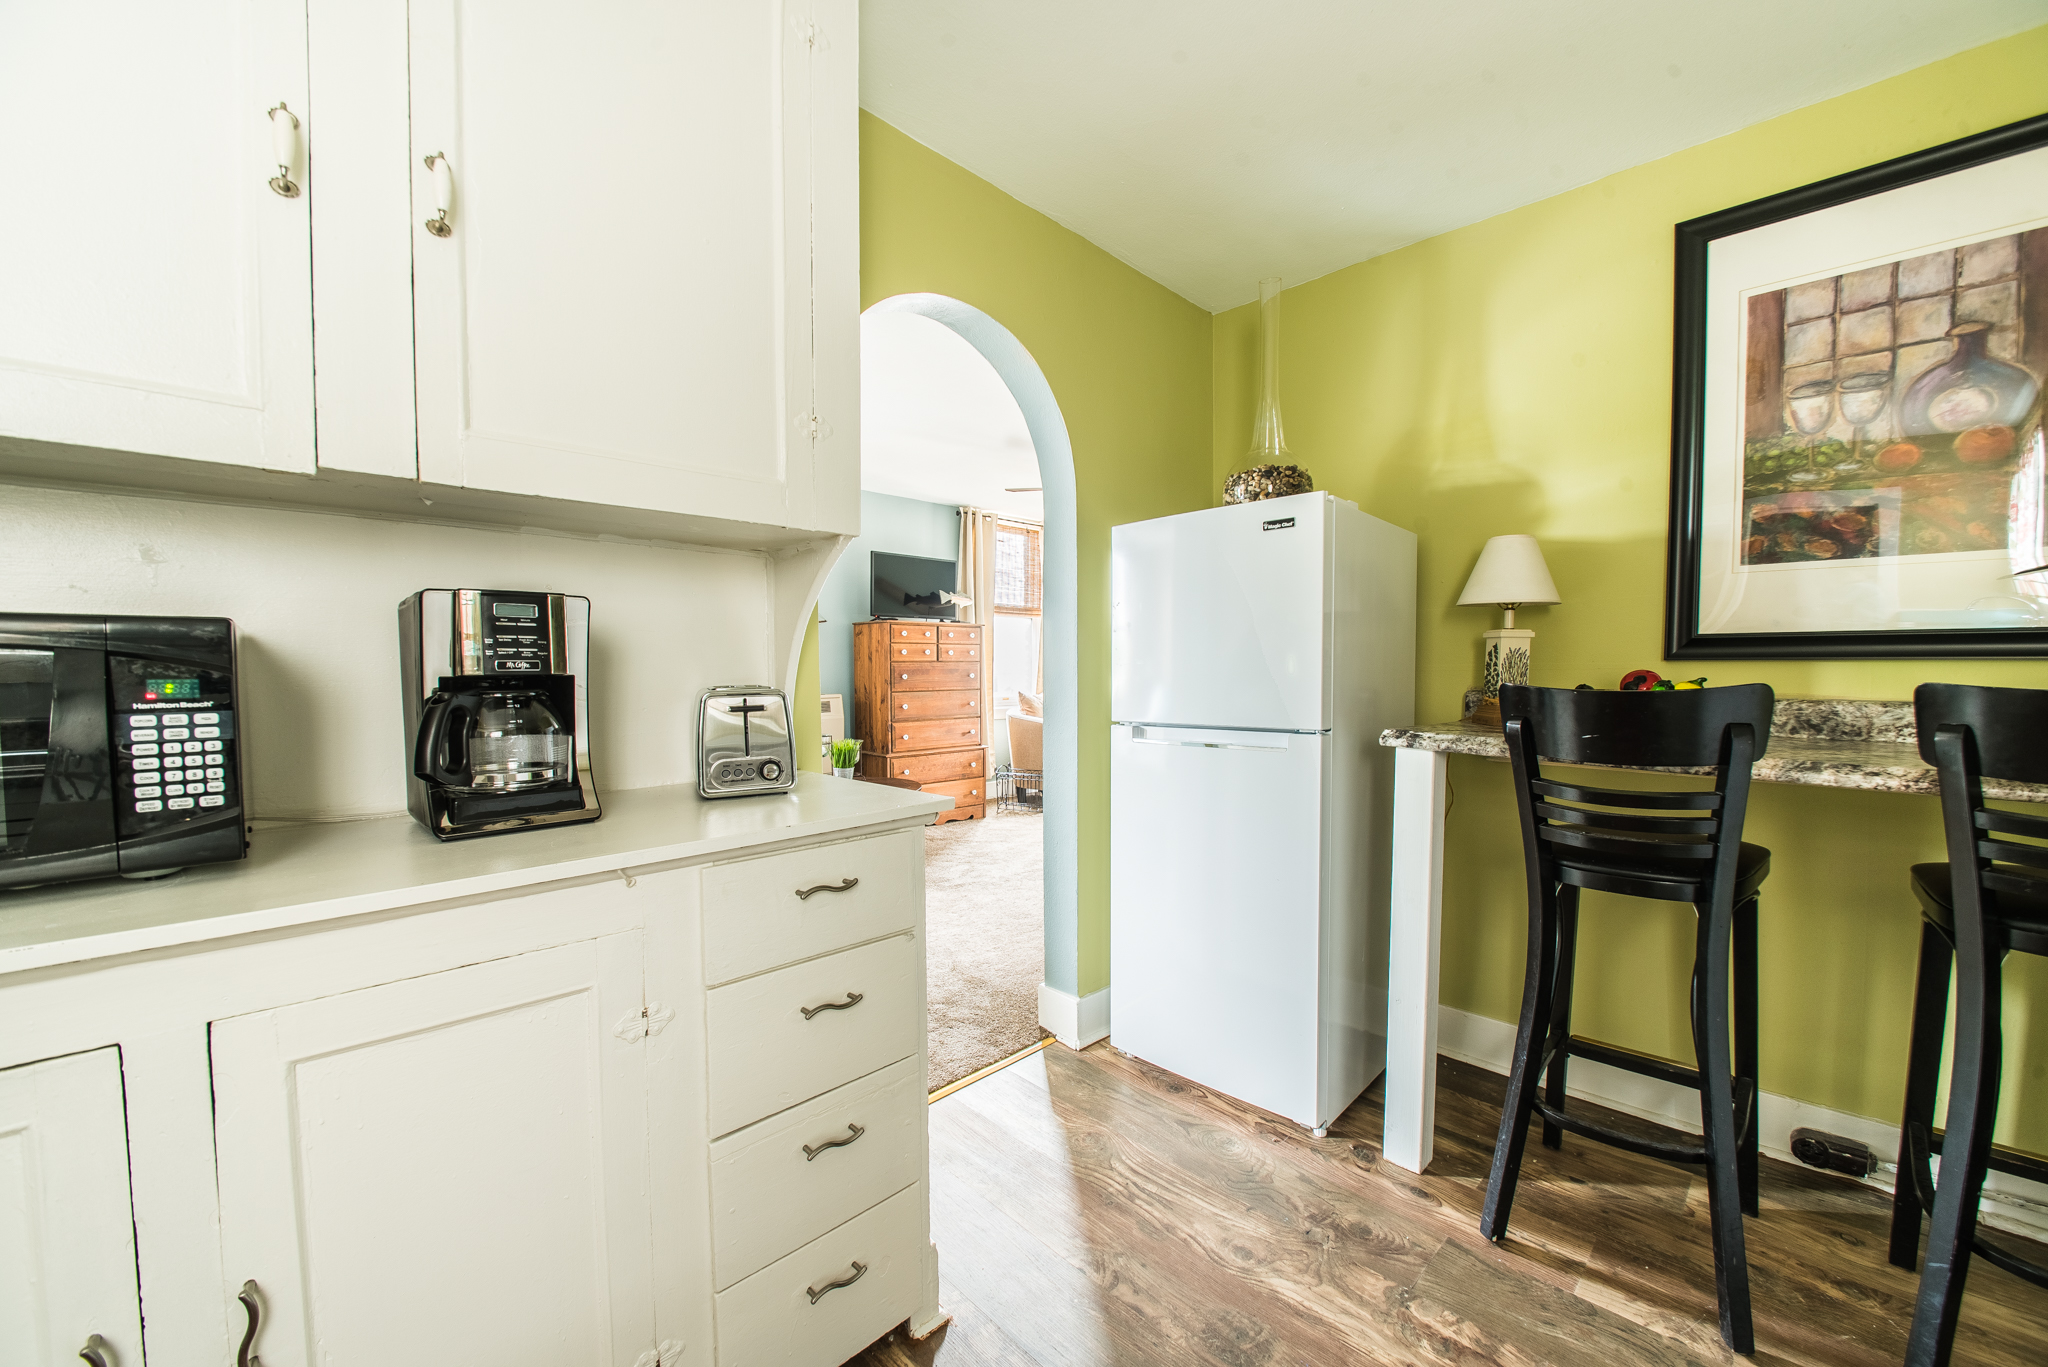 Kitchen amenities include microwave, toaster, coffee maker and refrigerator/freezer (no stove).